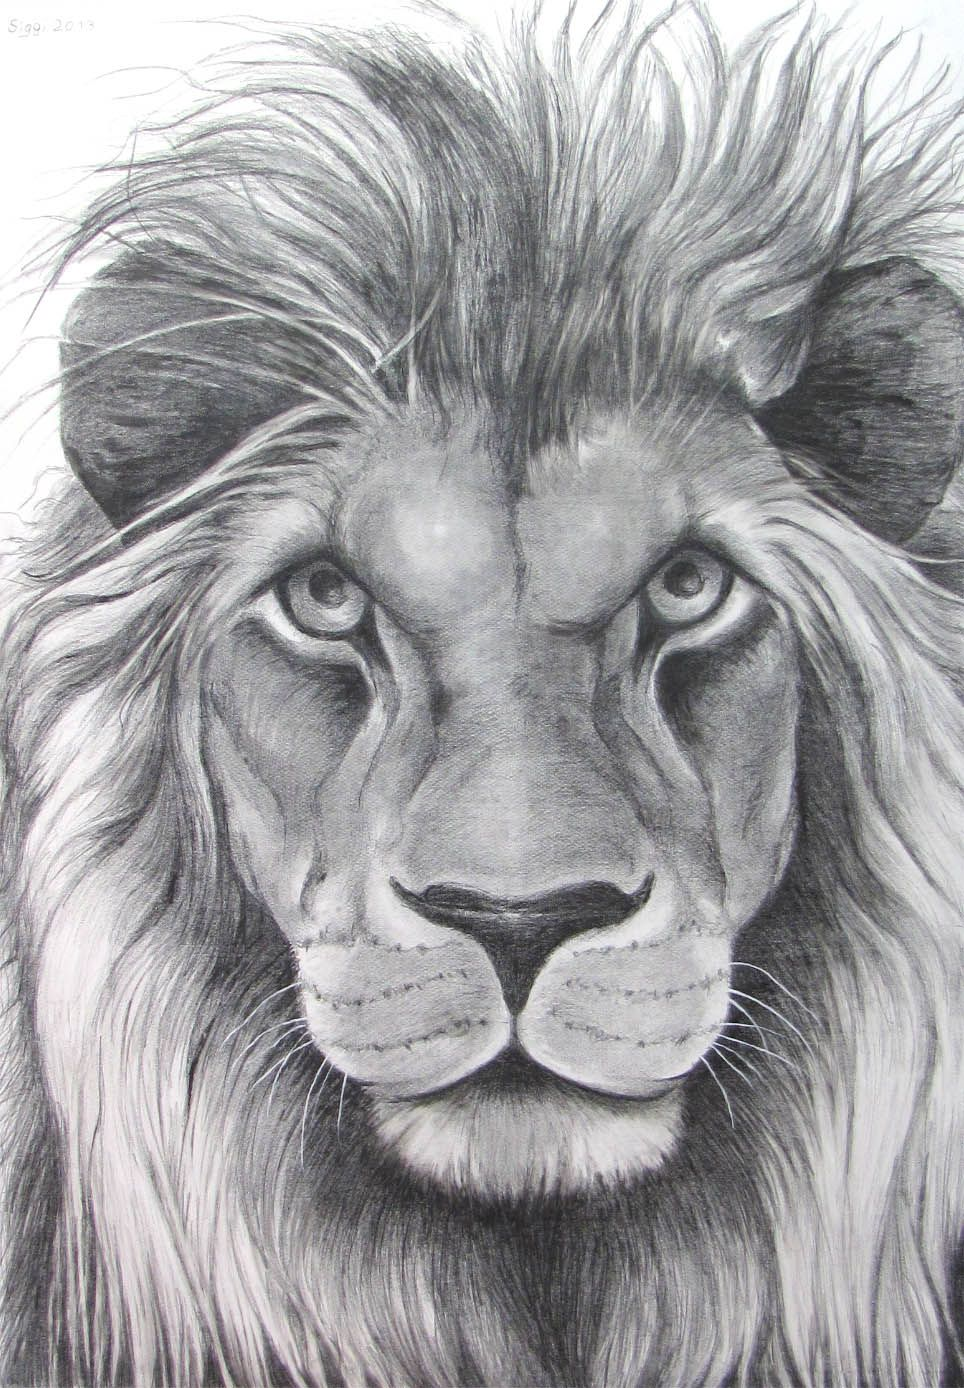 Lion pencil drawing google search tattoo ideas pencil drawings